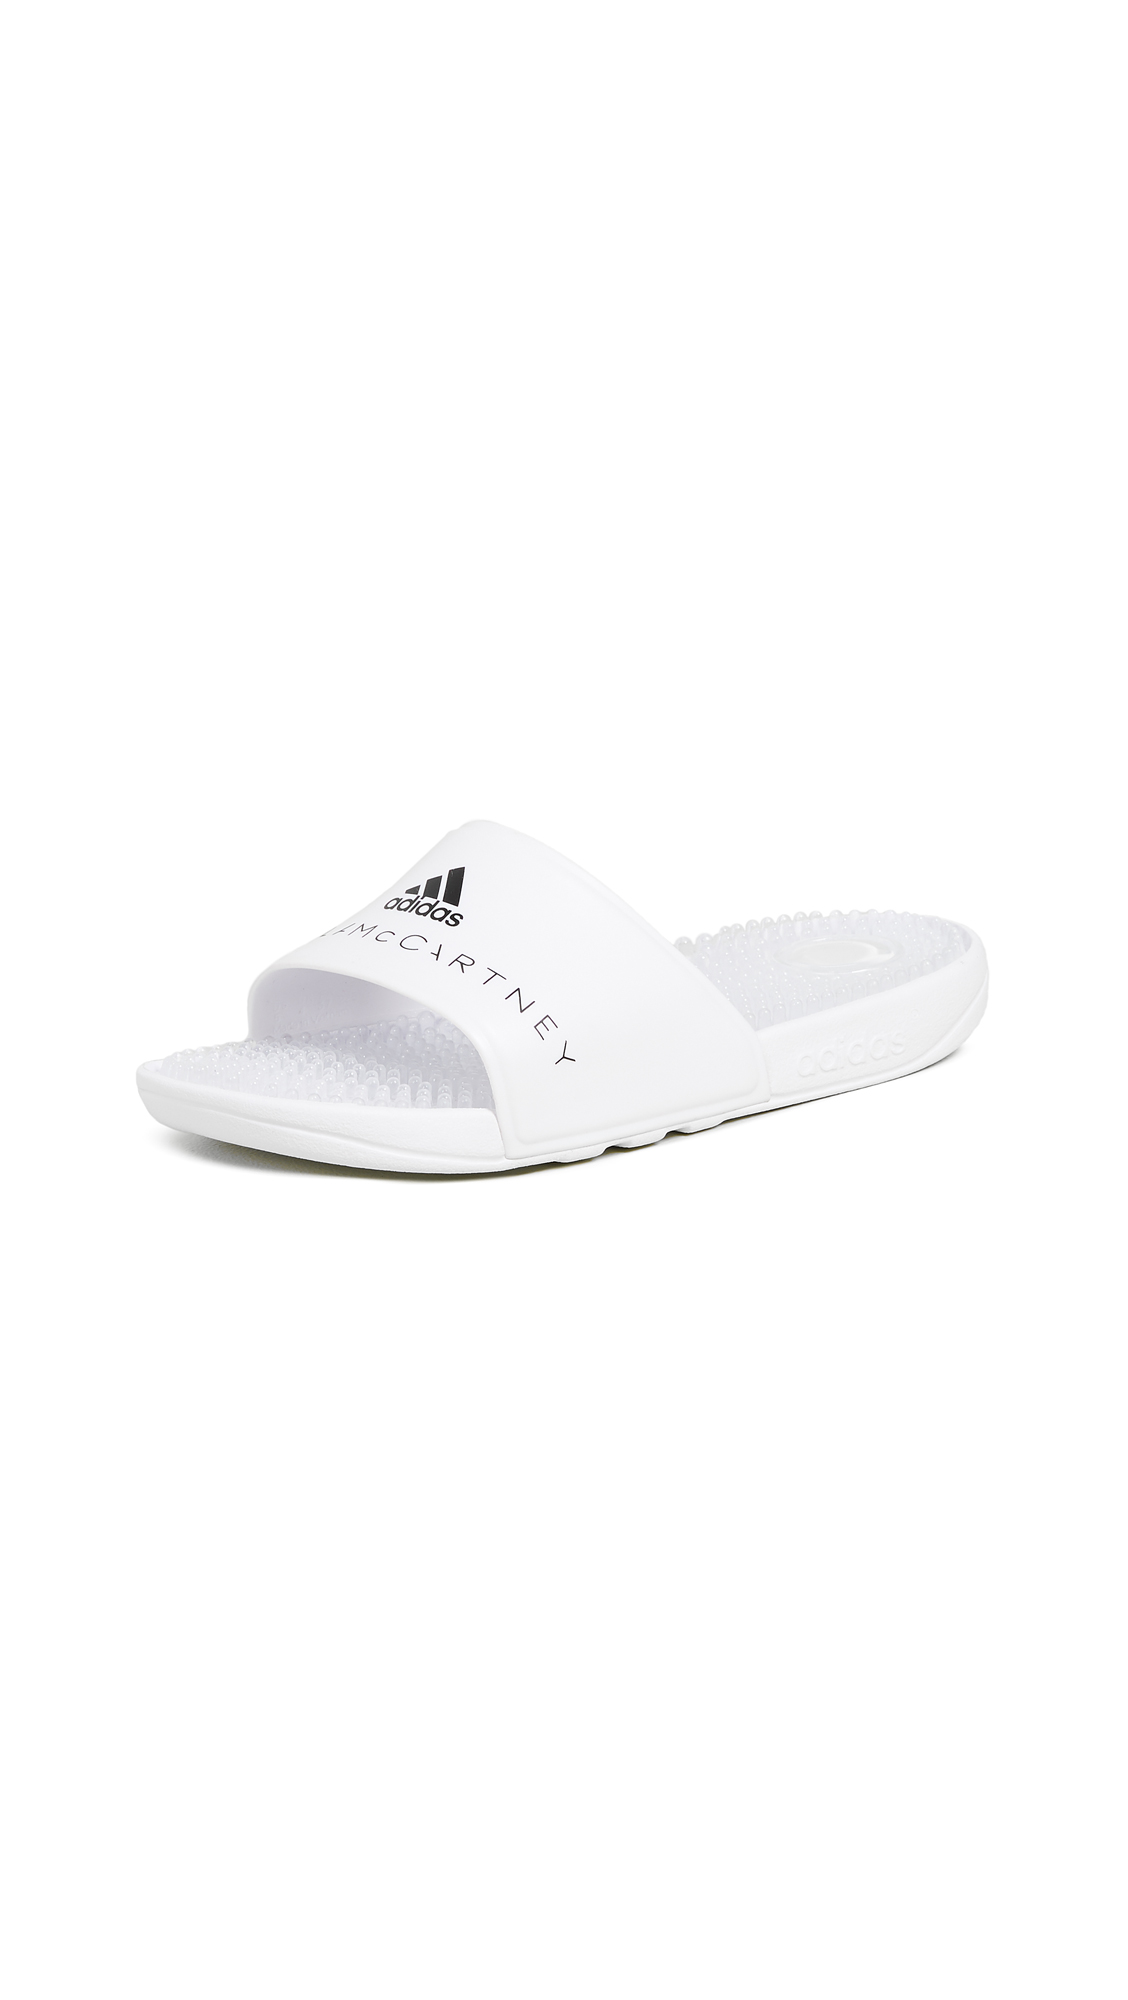 adidas by Stella McCartney Adissage W Slides - White/White/Core Black